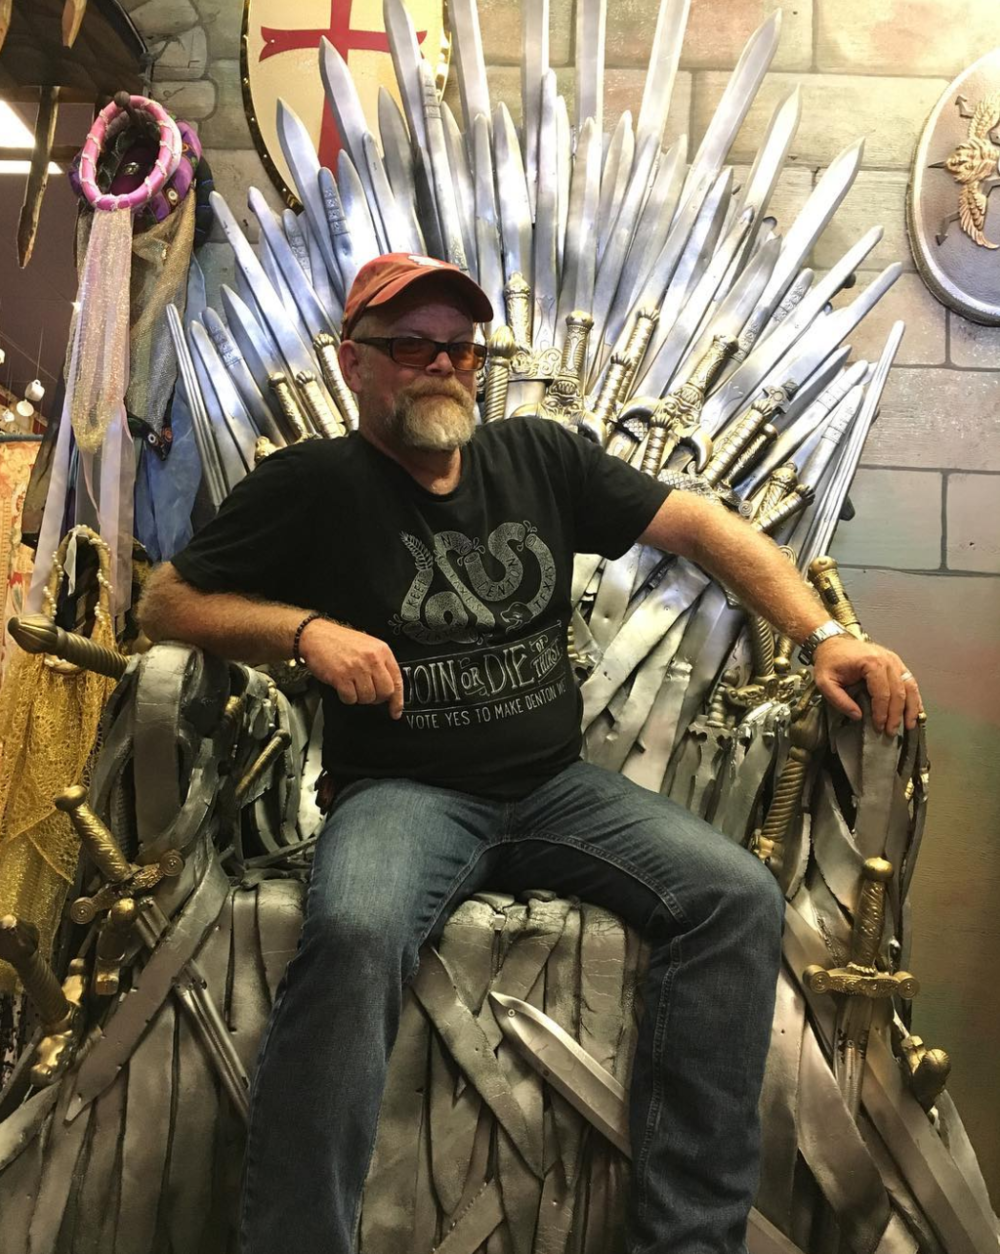 @dentonaut on the iron throne at Rose Costumes.